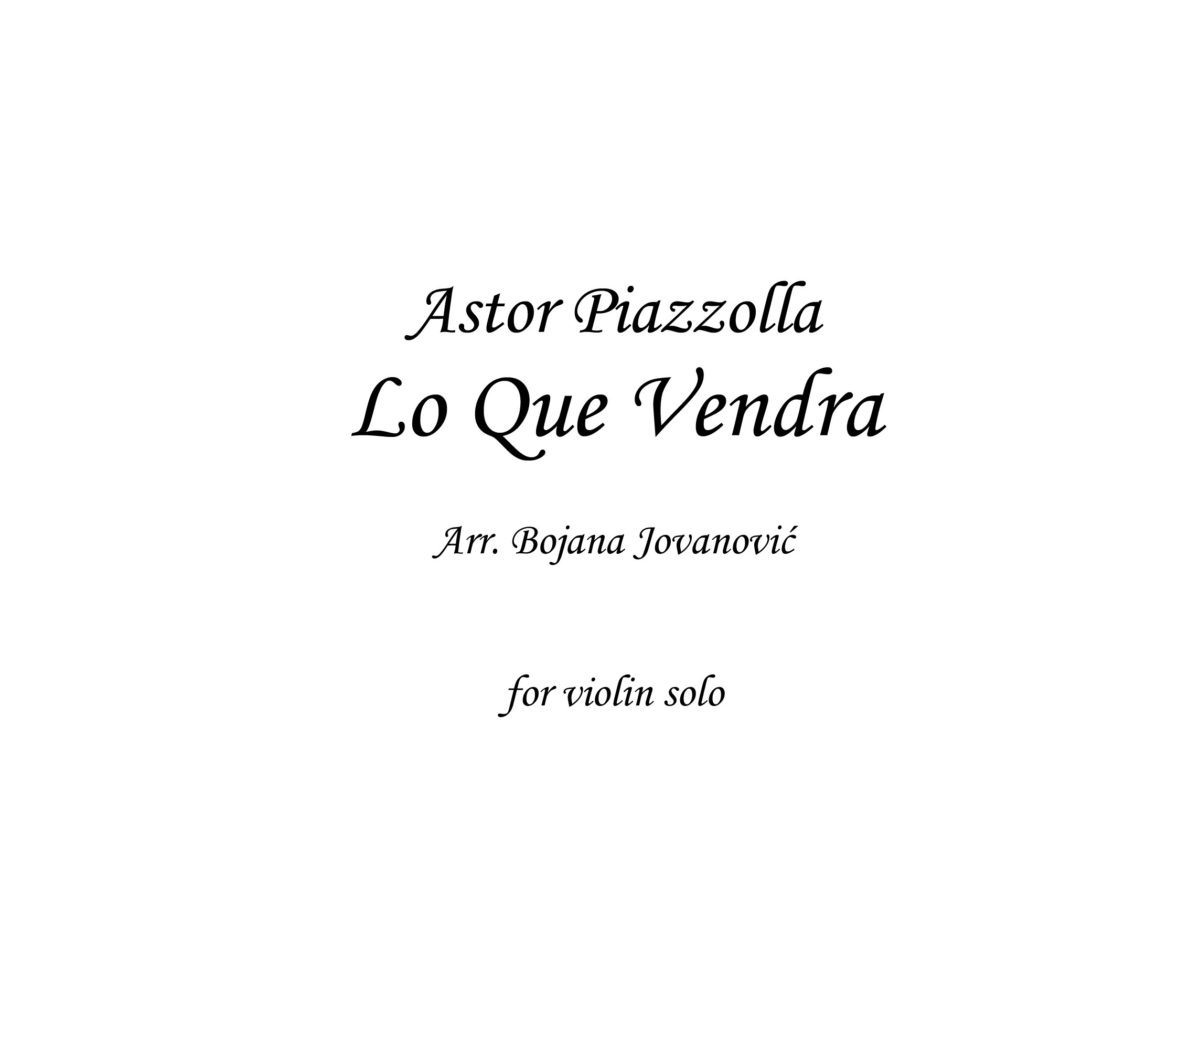 Lo que vendra Sheet music (Astor Piazzolla)